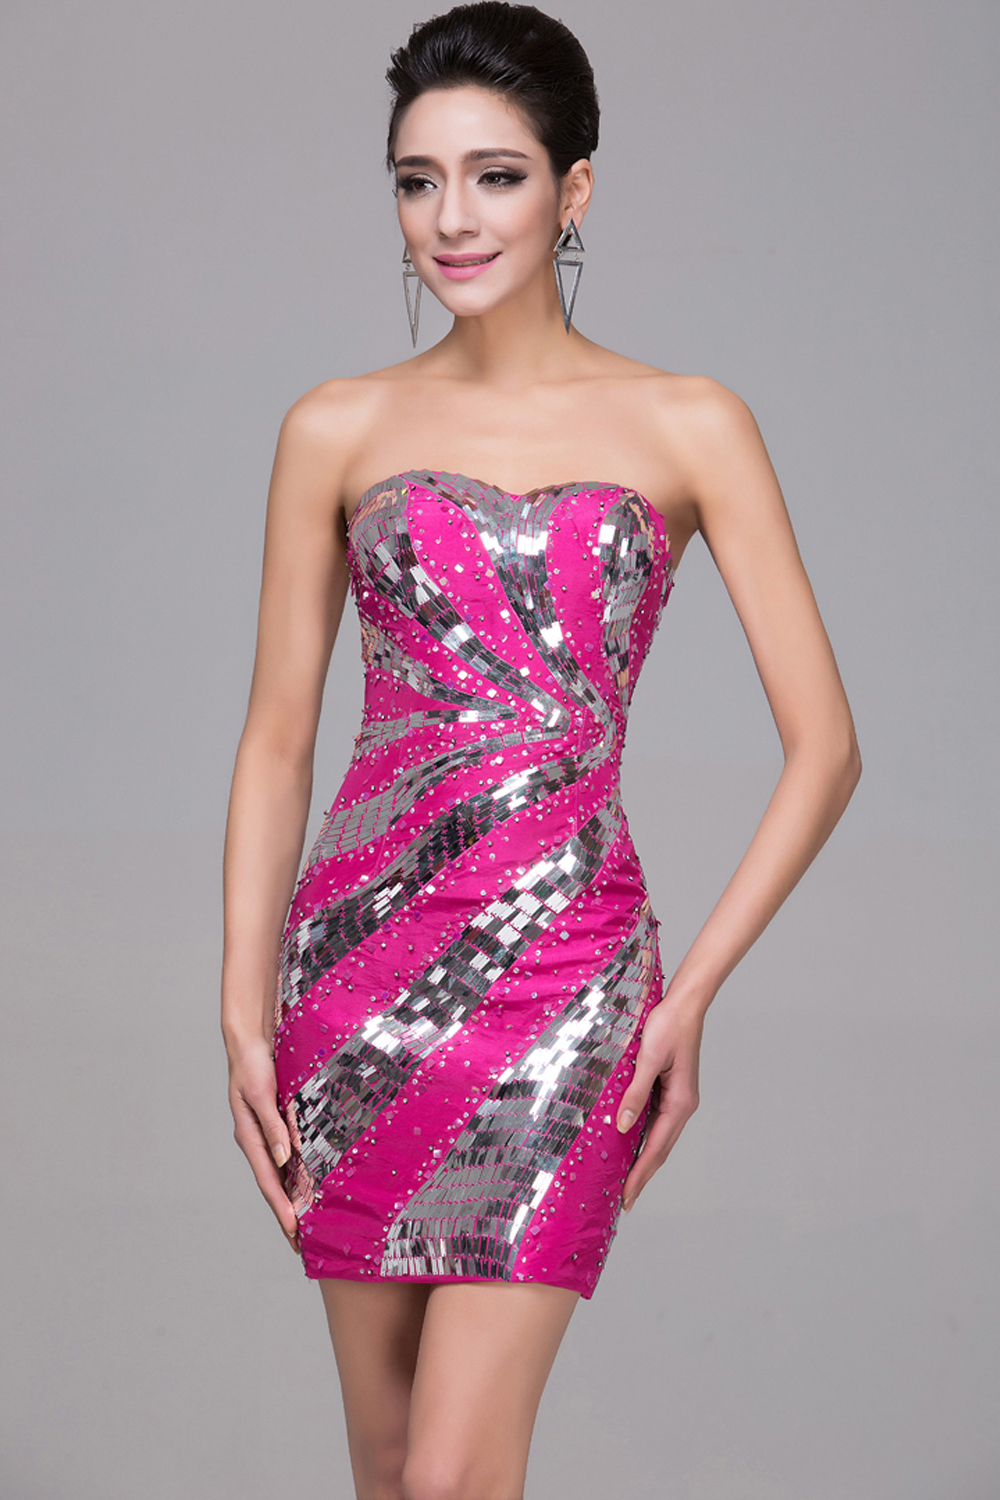 Sheath/Column Strapless Mini-Length Satin Cocktail Dress with Sequins